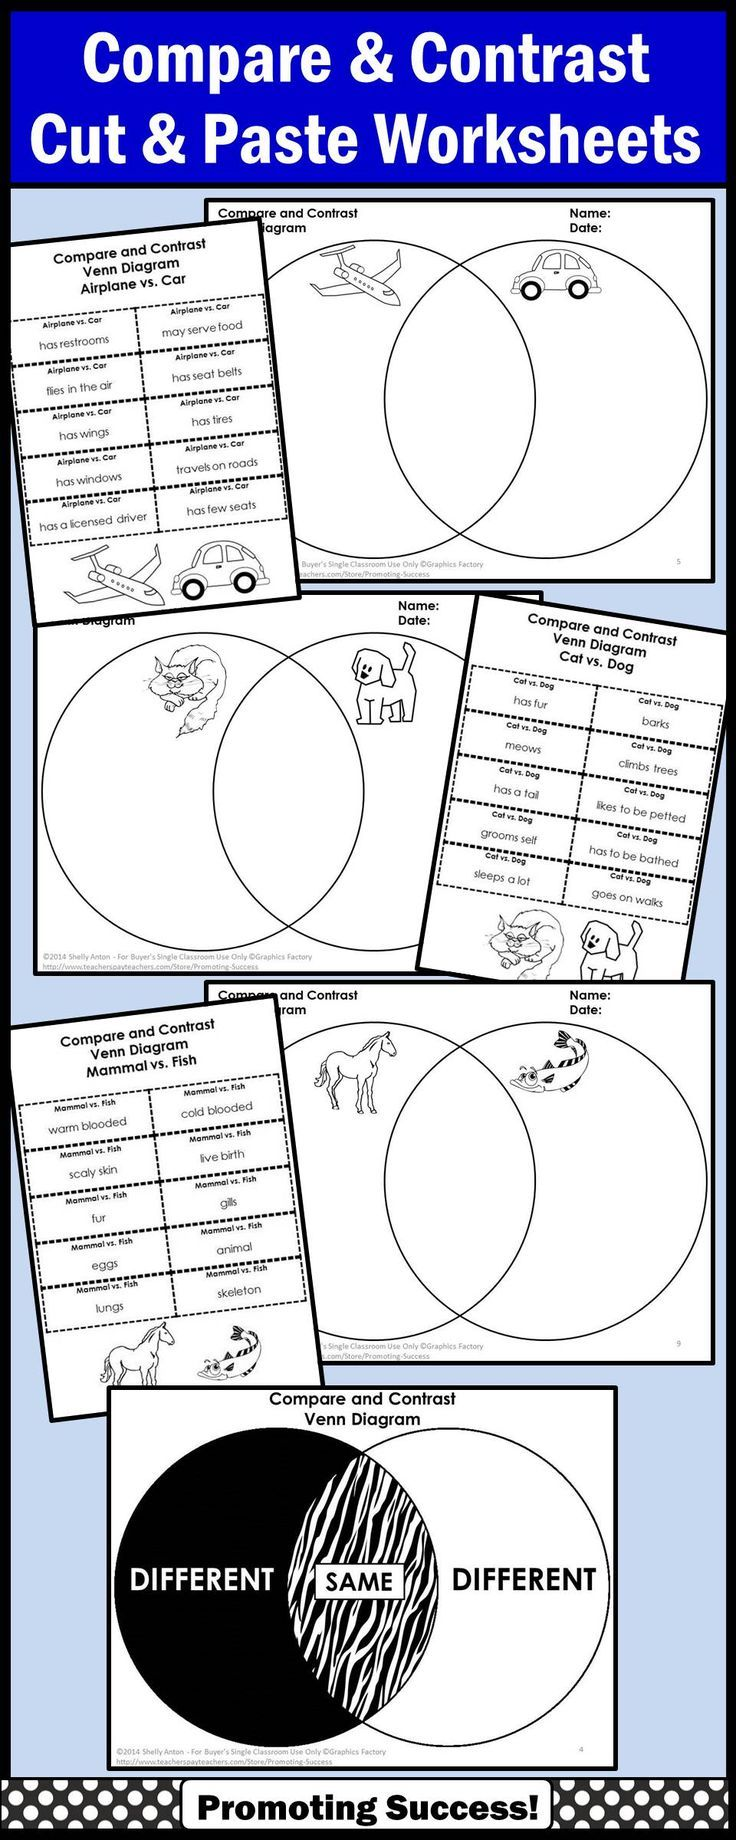 best ideas about compare and contrast examples compare and contrast worksheets venn diagram activities for literacy centers